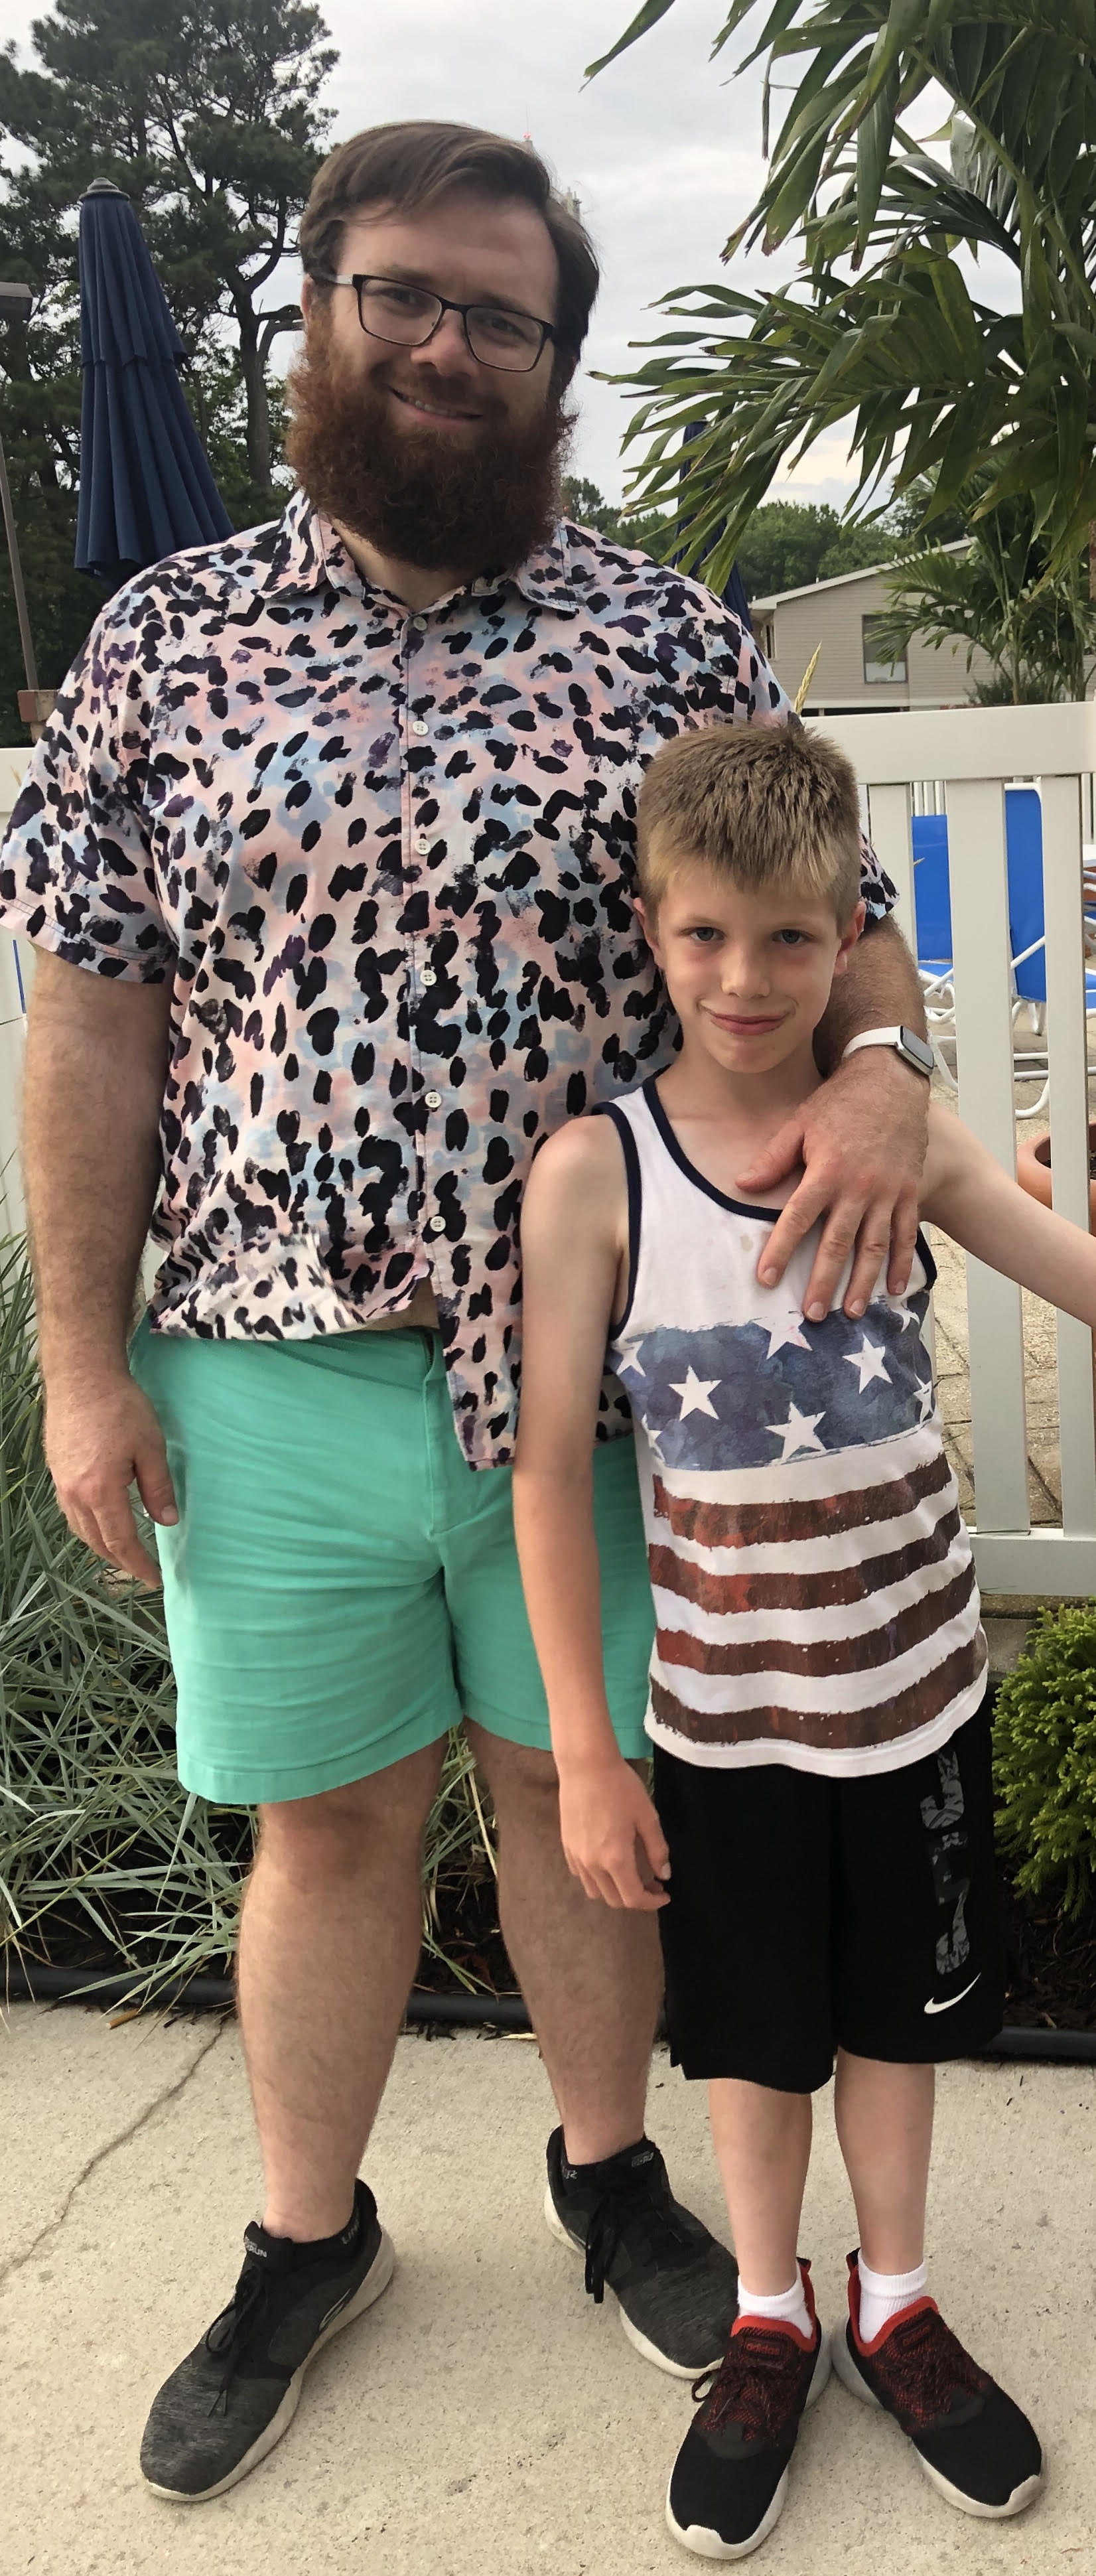 """""""Was able to ride my first roller coaster since right after college this week at Funland. I would not have even attempted it 6 months ago. Frank and I were able to ride together for the perfect father-son experience, one I almost missed out on. Now I got more of those coming my way."""""""